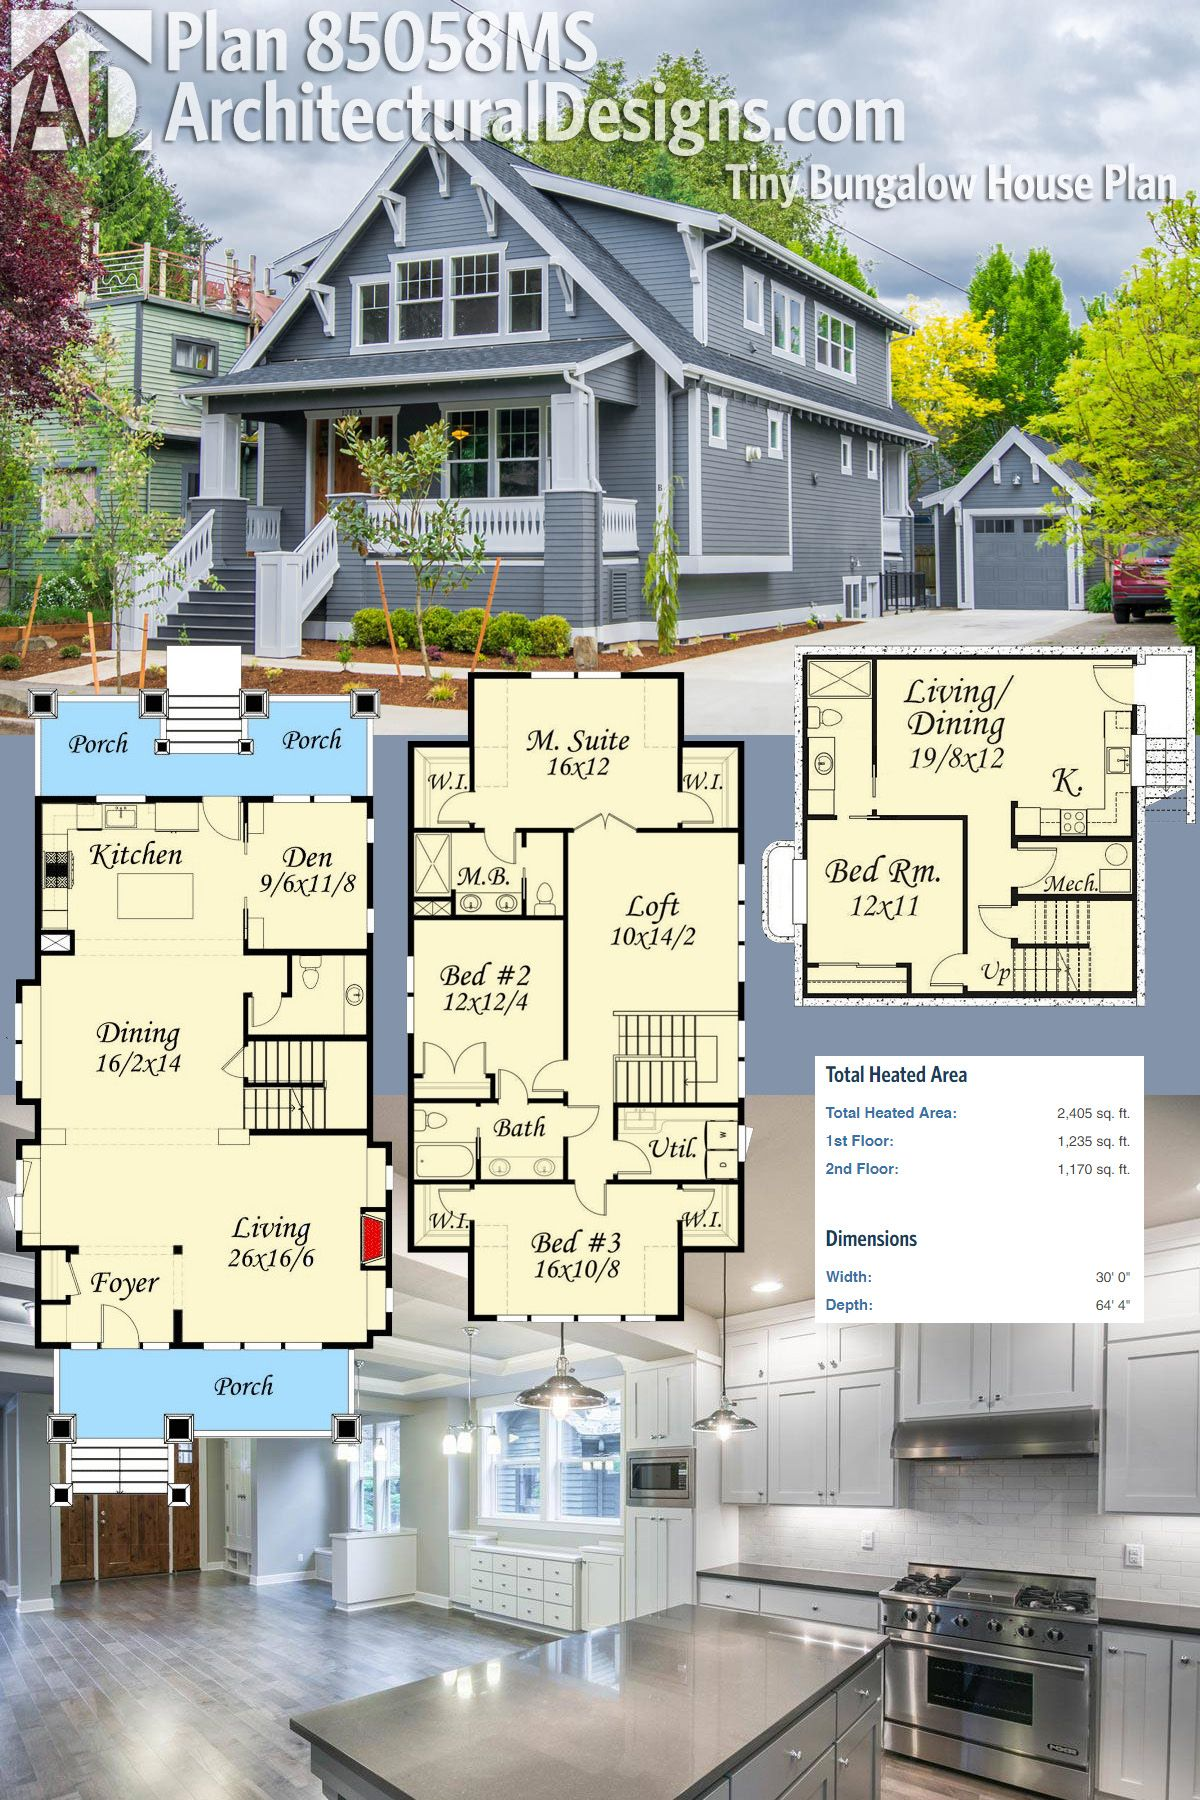 Plan 85058ms Handsome Bungalow House Plan Open Floor